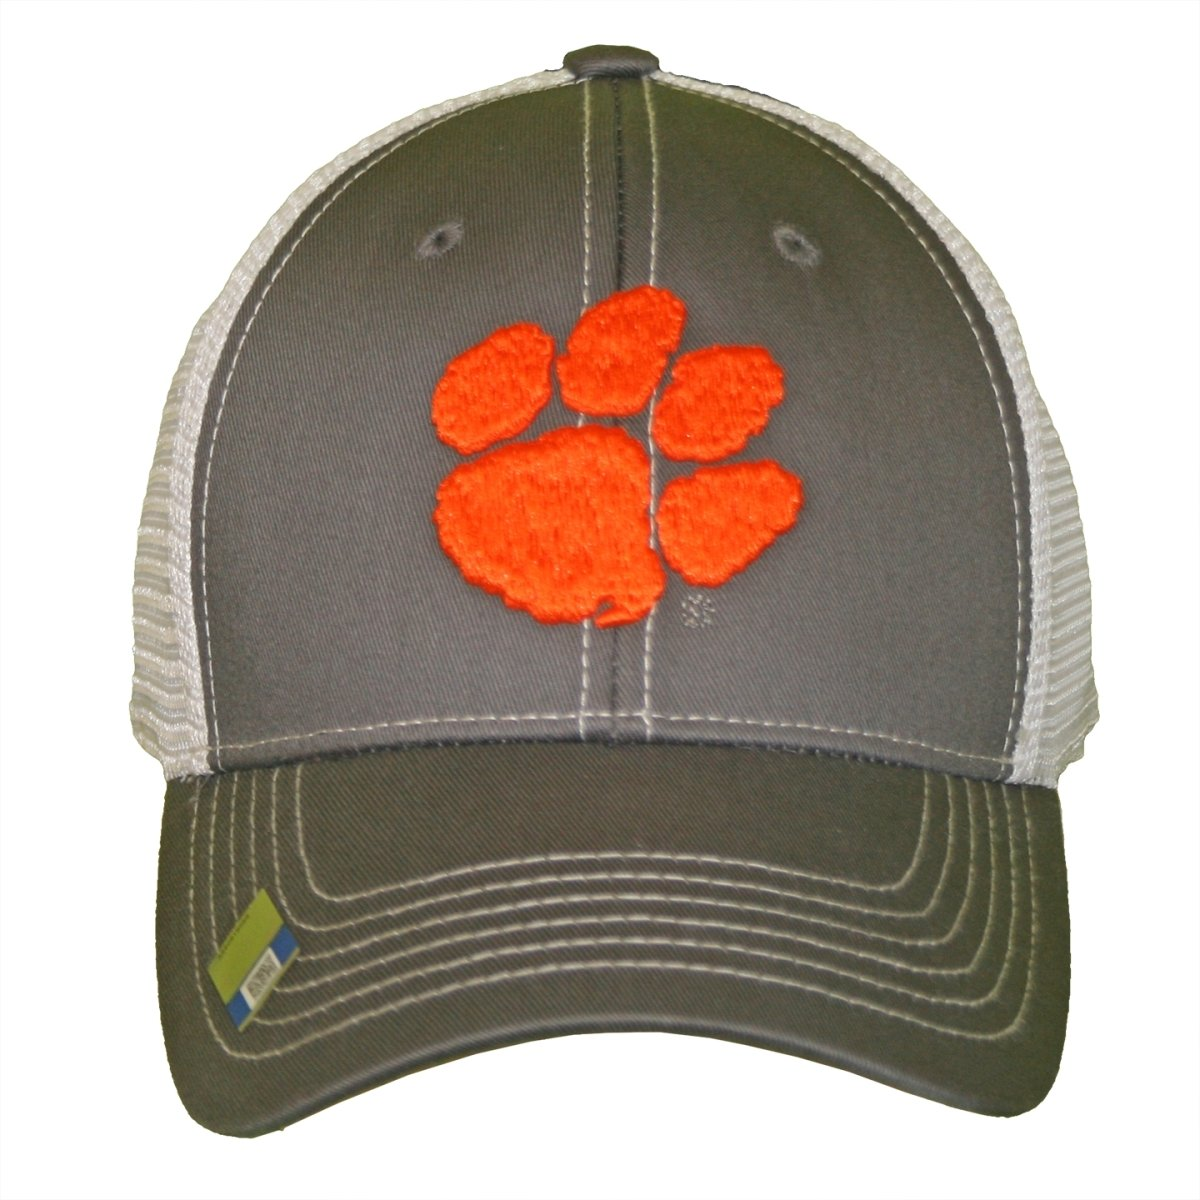 Grey Ghost 2-tone Trucker Hat Mesh Snapback With Orange Paw - Mr. Knickerbocker